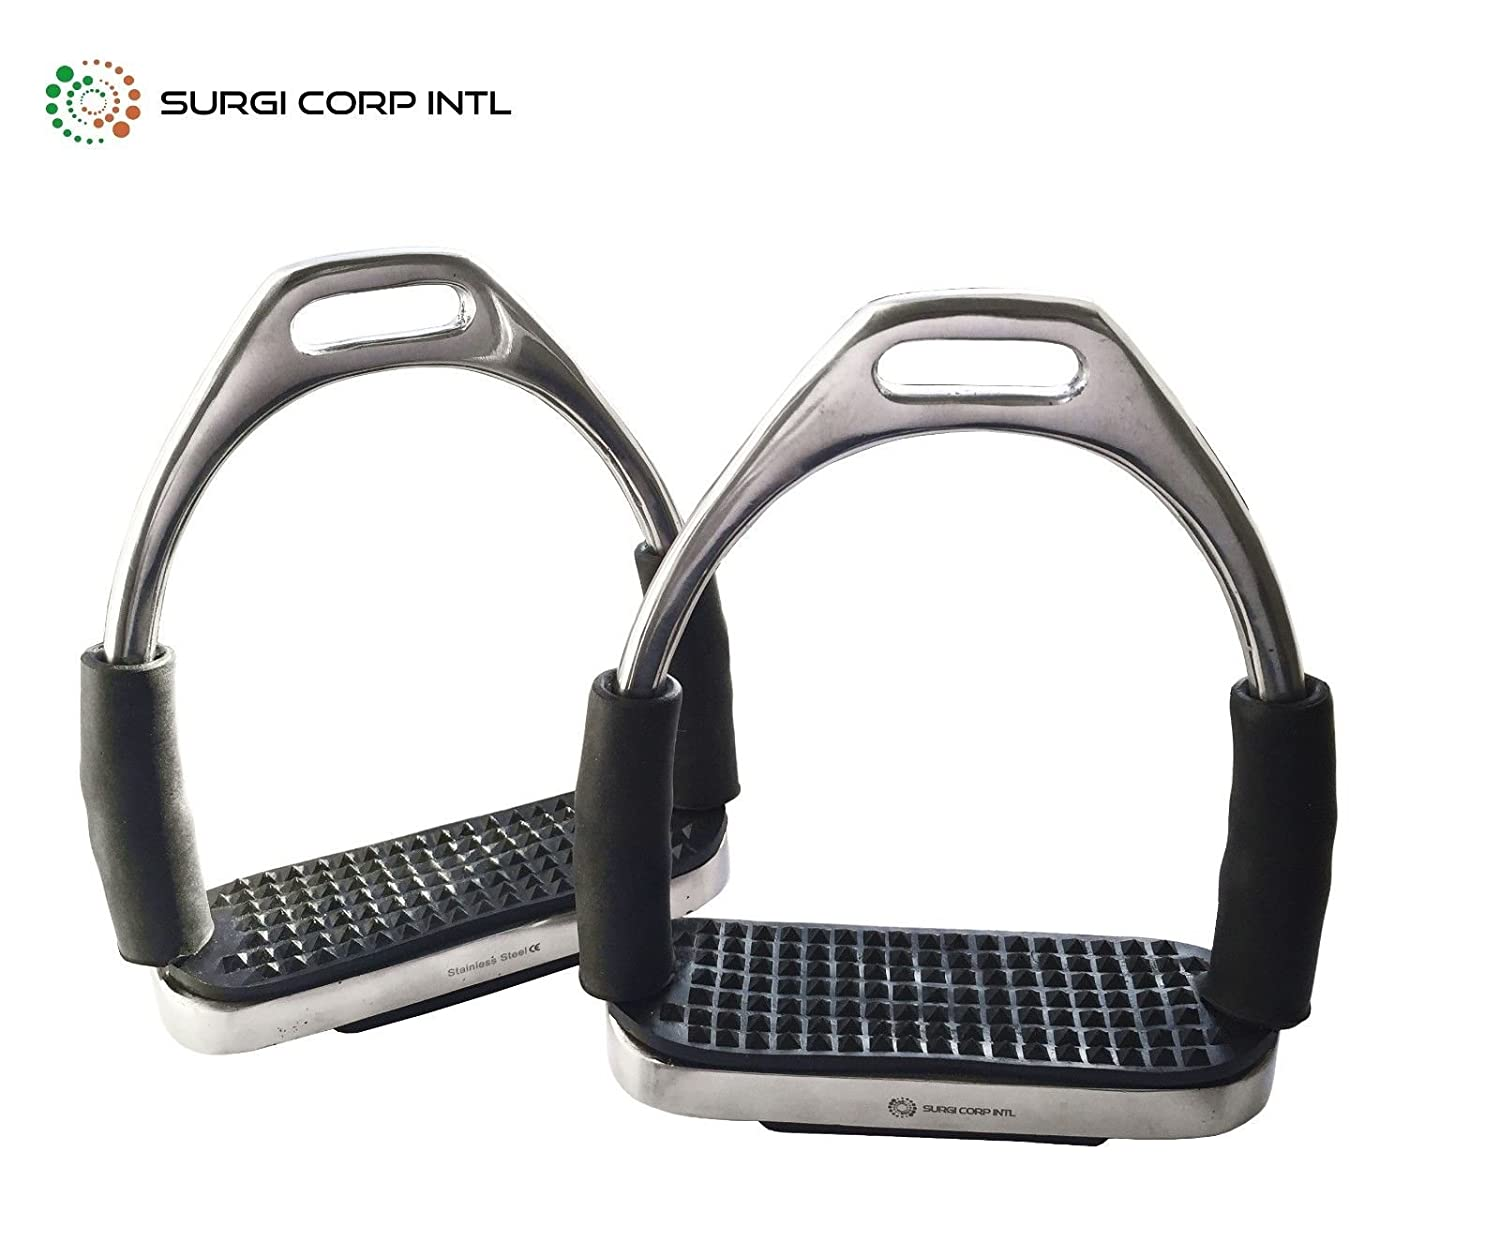 Surgi Corp Intl FLEXI SAFETY STIRRUPS HORSE RIDING BENDY IRONS STAINLESS STEEL (5.0')